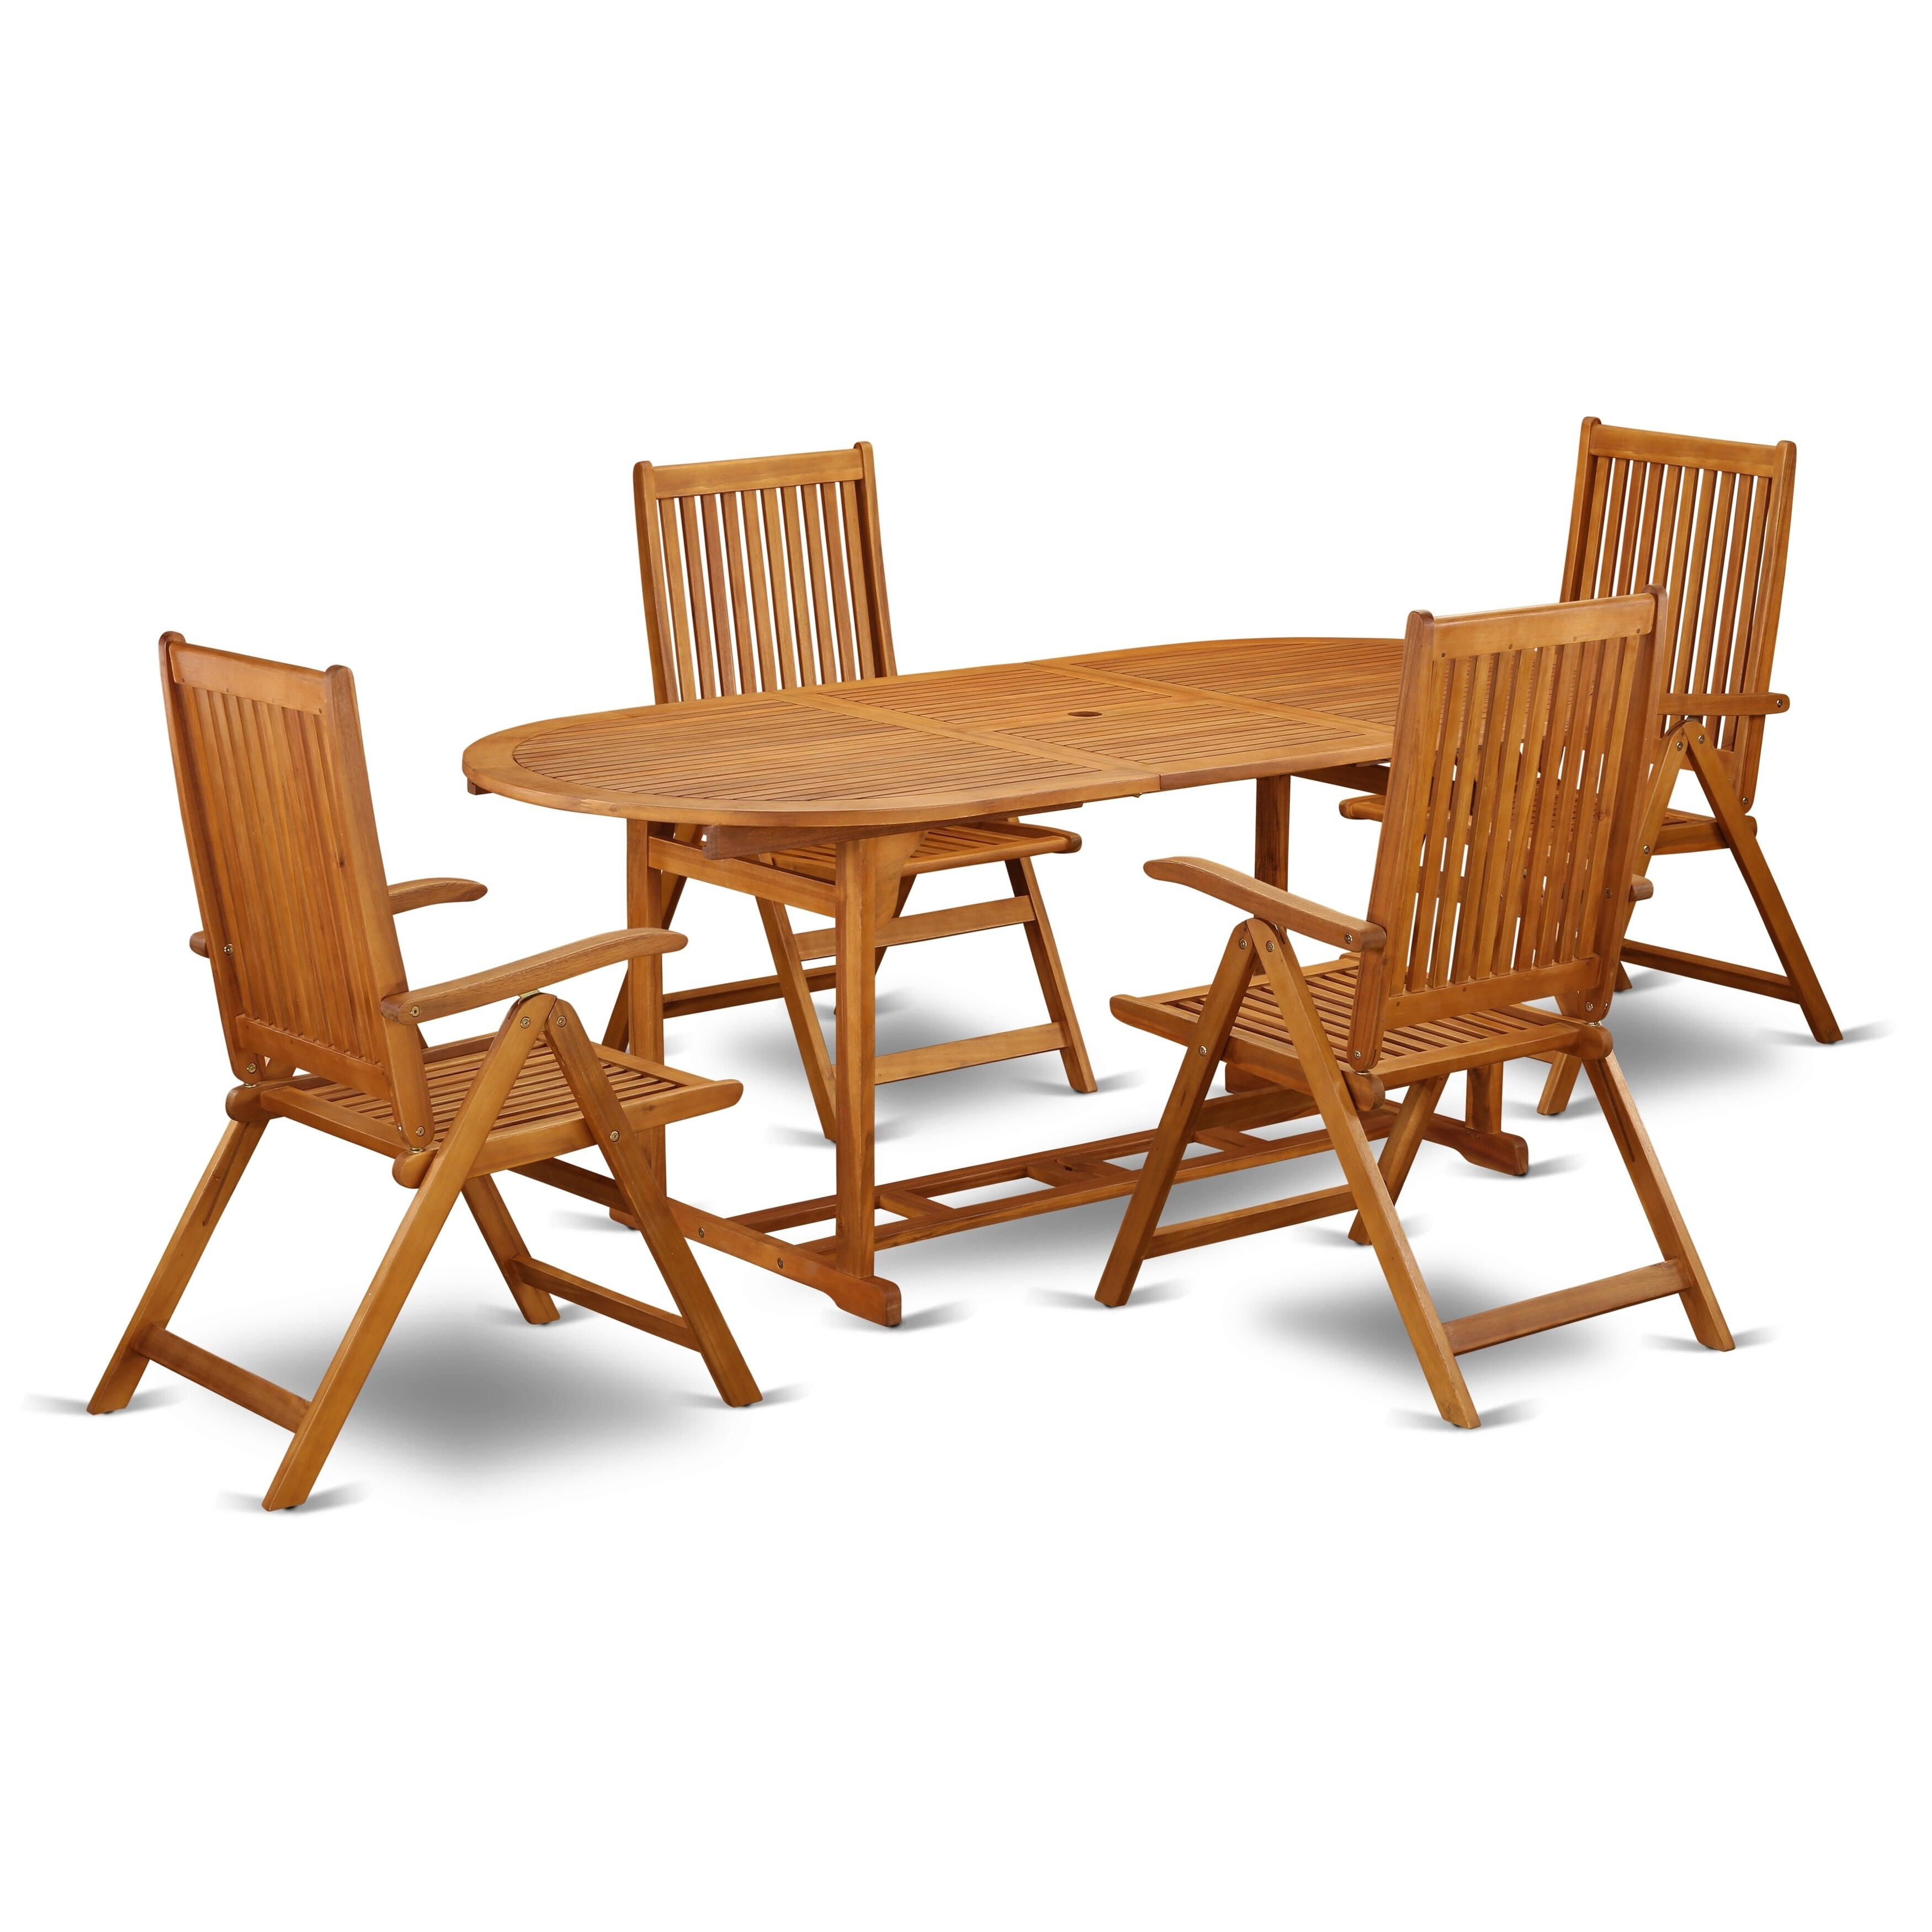 Acacia Wood Outdoor Patio Set Offers An Table Foldable Chairs Number Of Chair Option